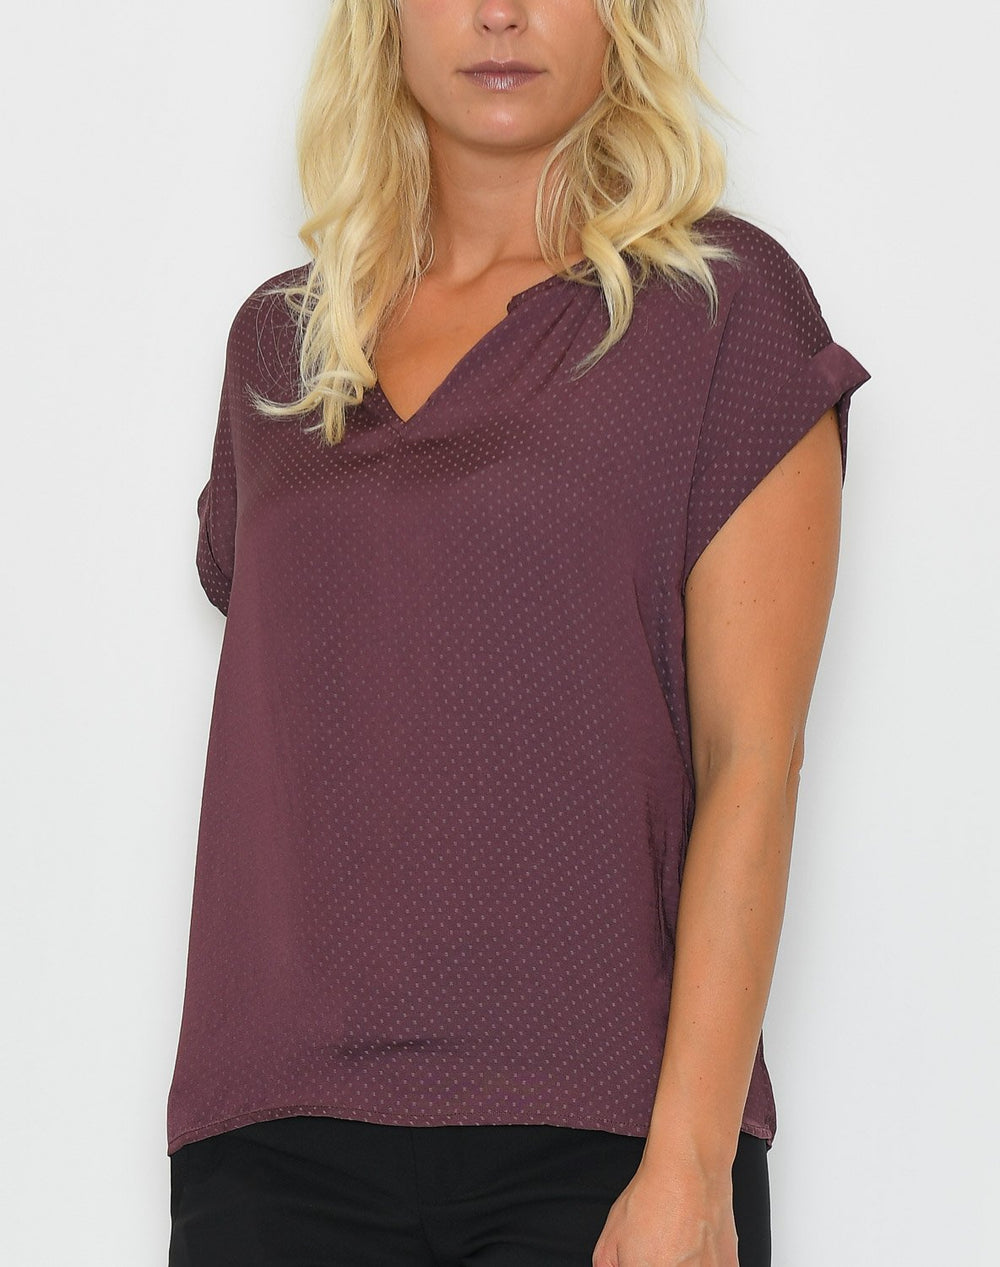 Saint Tropez Top with fabric dots aronia - Online-Mode